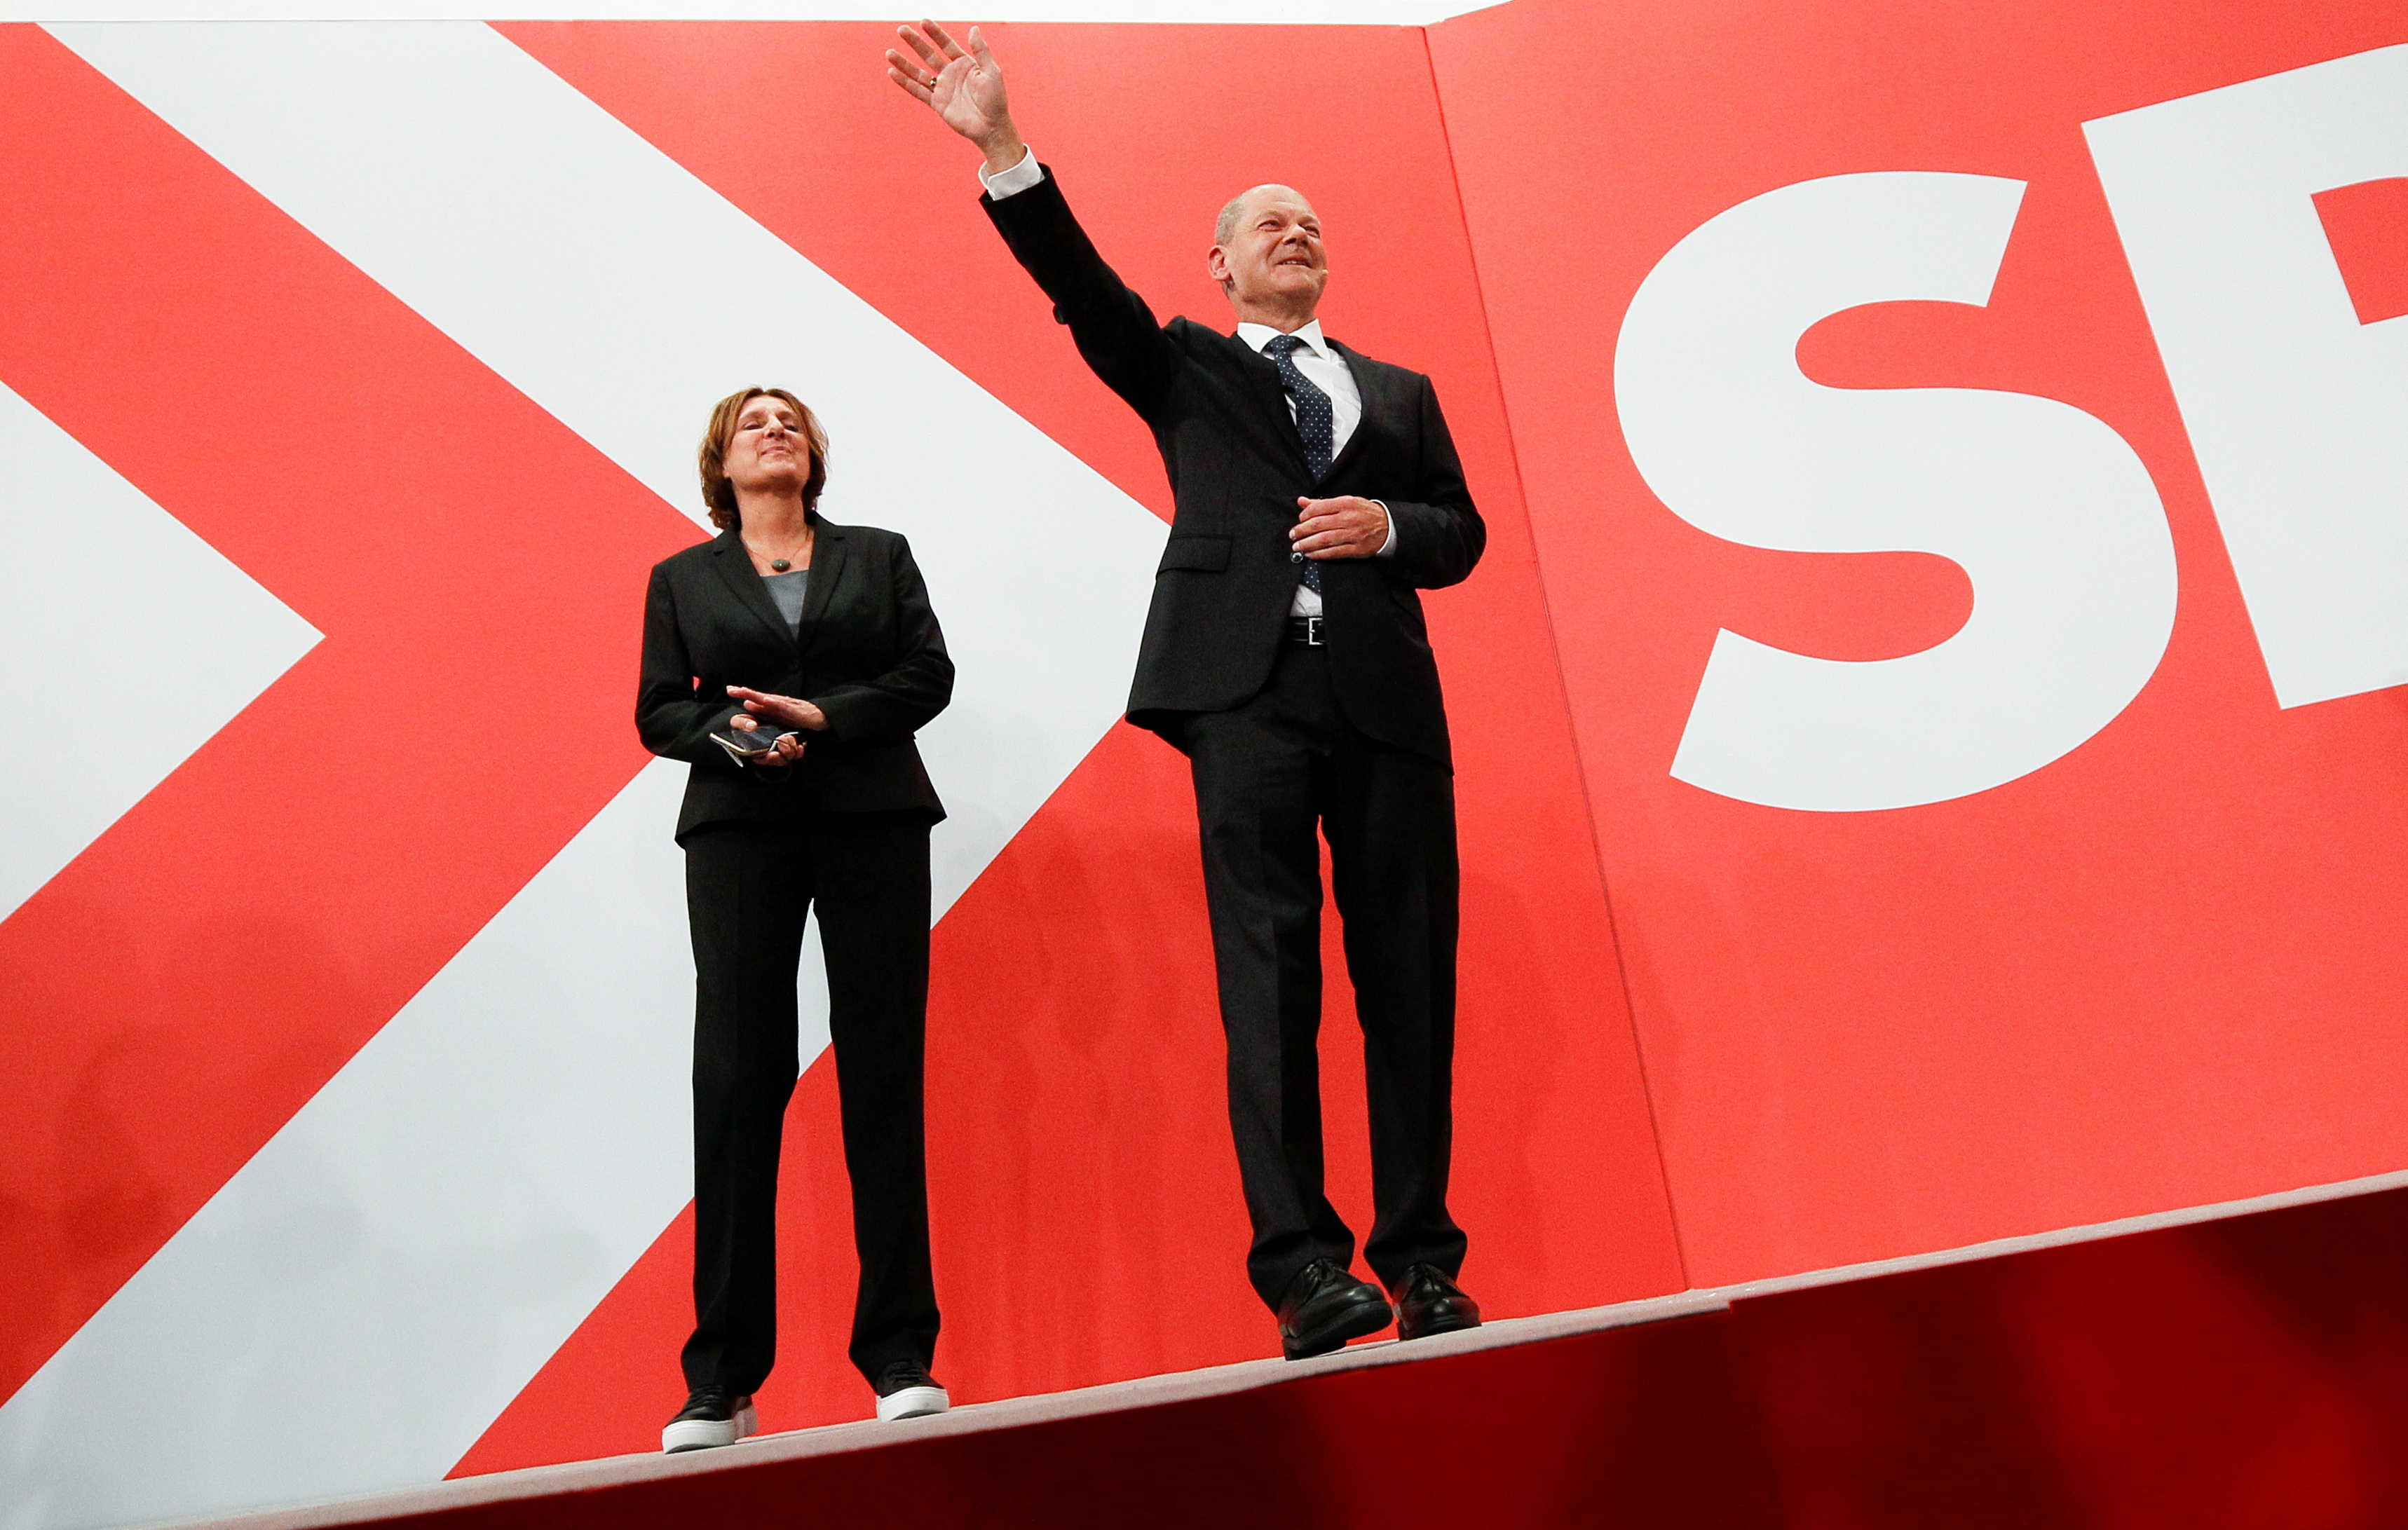 Social Democratic Party (SPD) leader and top candidate for chancellor Olaf Scholz and his wife Britta Ernst react after first exit polls for the general elections in Berlin, Germany, September 26, 2021.  REUTERS/Wolfgang Rattay